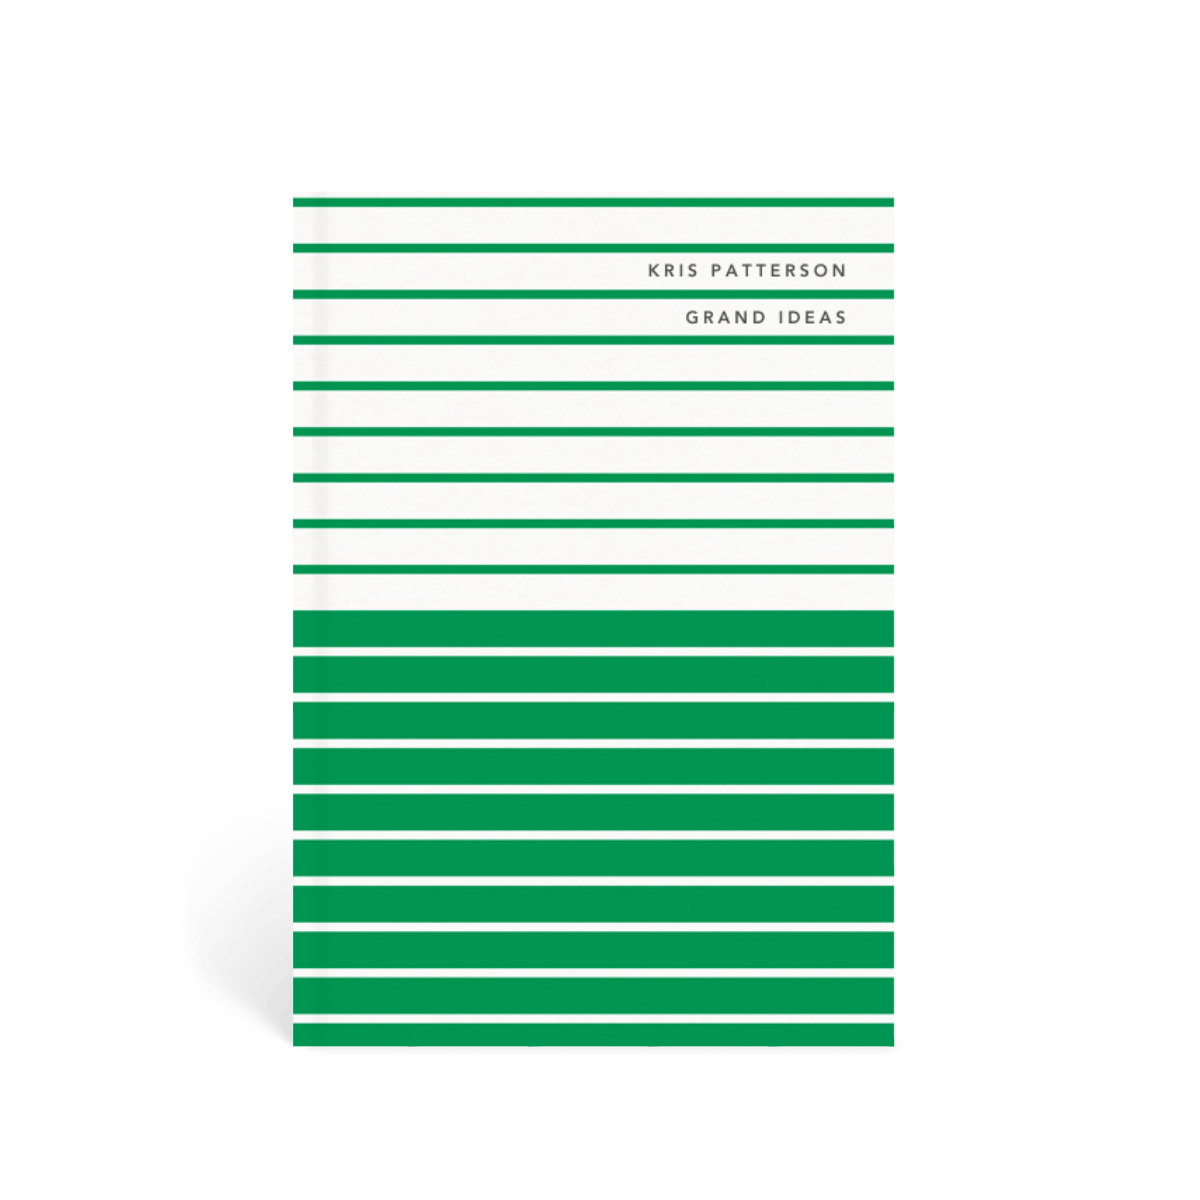 Https%3a%2f%2fwww.papier.com%2fproduct image%2f73192%2f25%2fdouble stripe 17209 front 1573125670.png?ixlib=rb 1.1